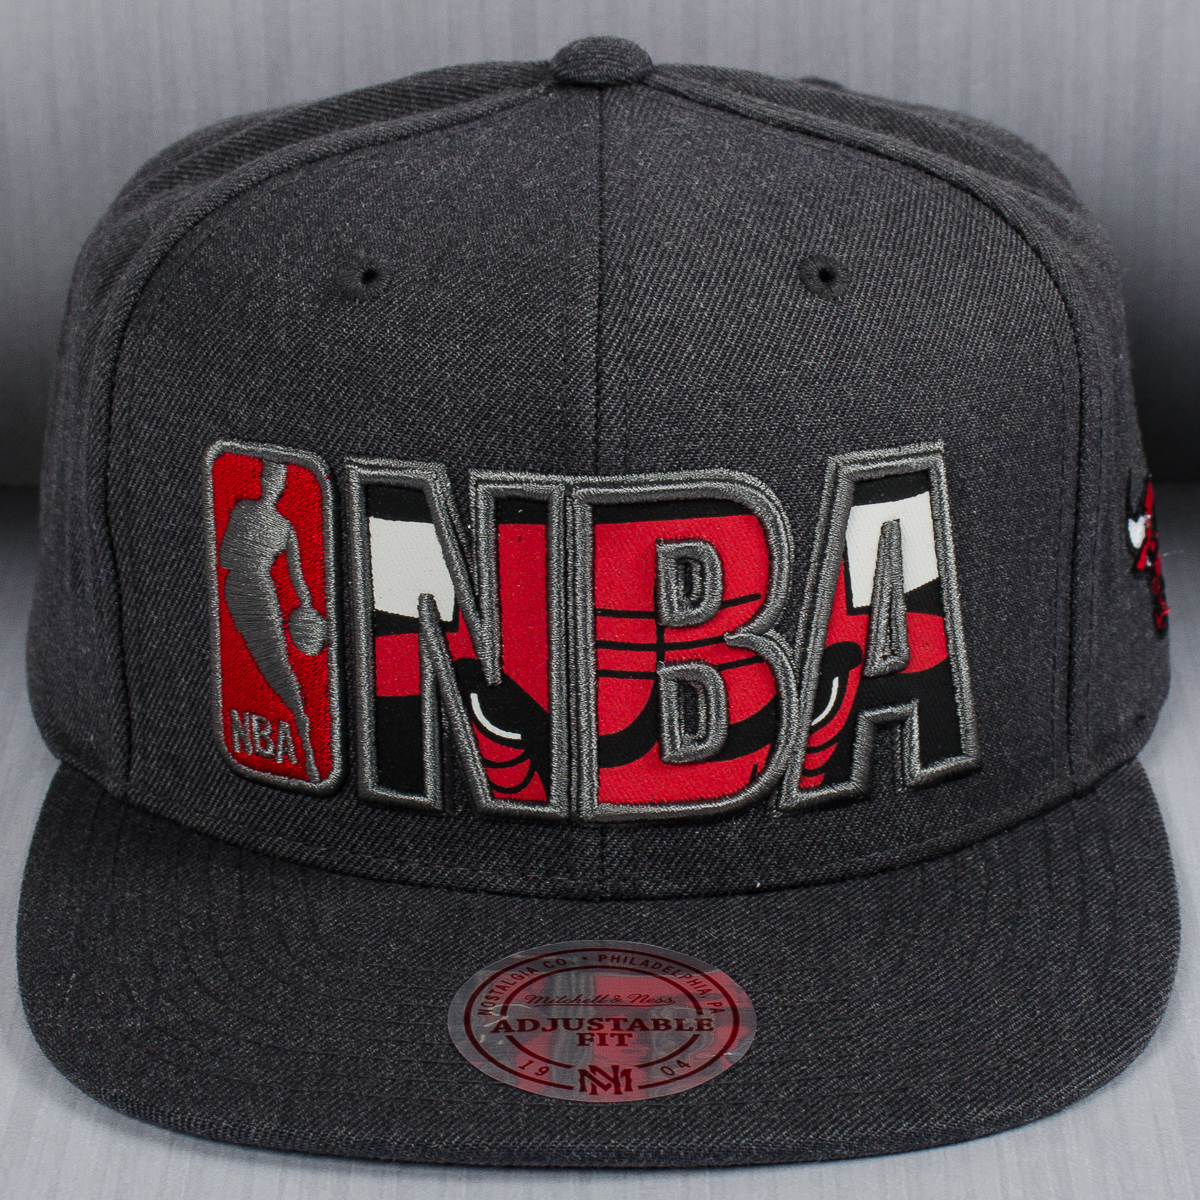 NBA Store: Shop NBA Apparel and NBA Jerseys. Keep your collection of NBA gear current with a visit to our NBA skillfulnep.tk offer the latest styles in NBA Jerseys, Snapbacks and T-Shirts arriving daily to make sure your NBA Apparel is up-to-date.